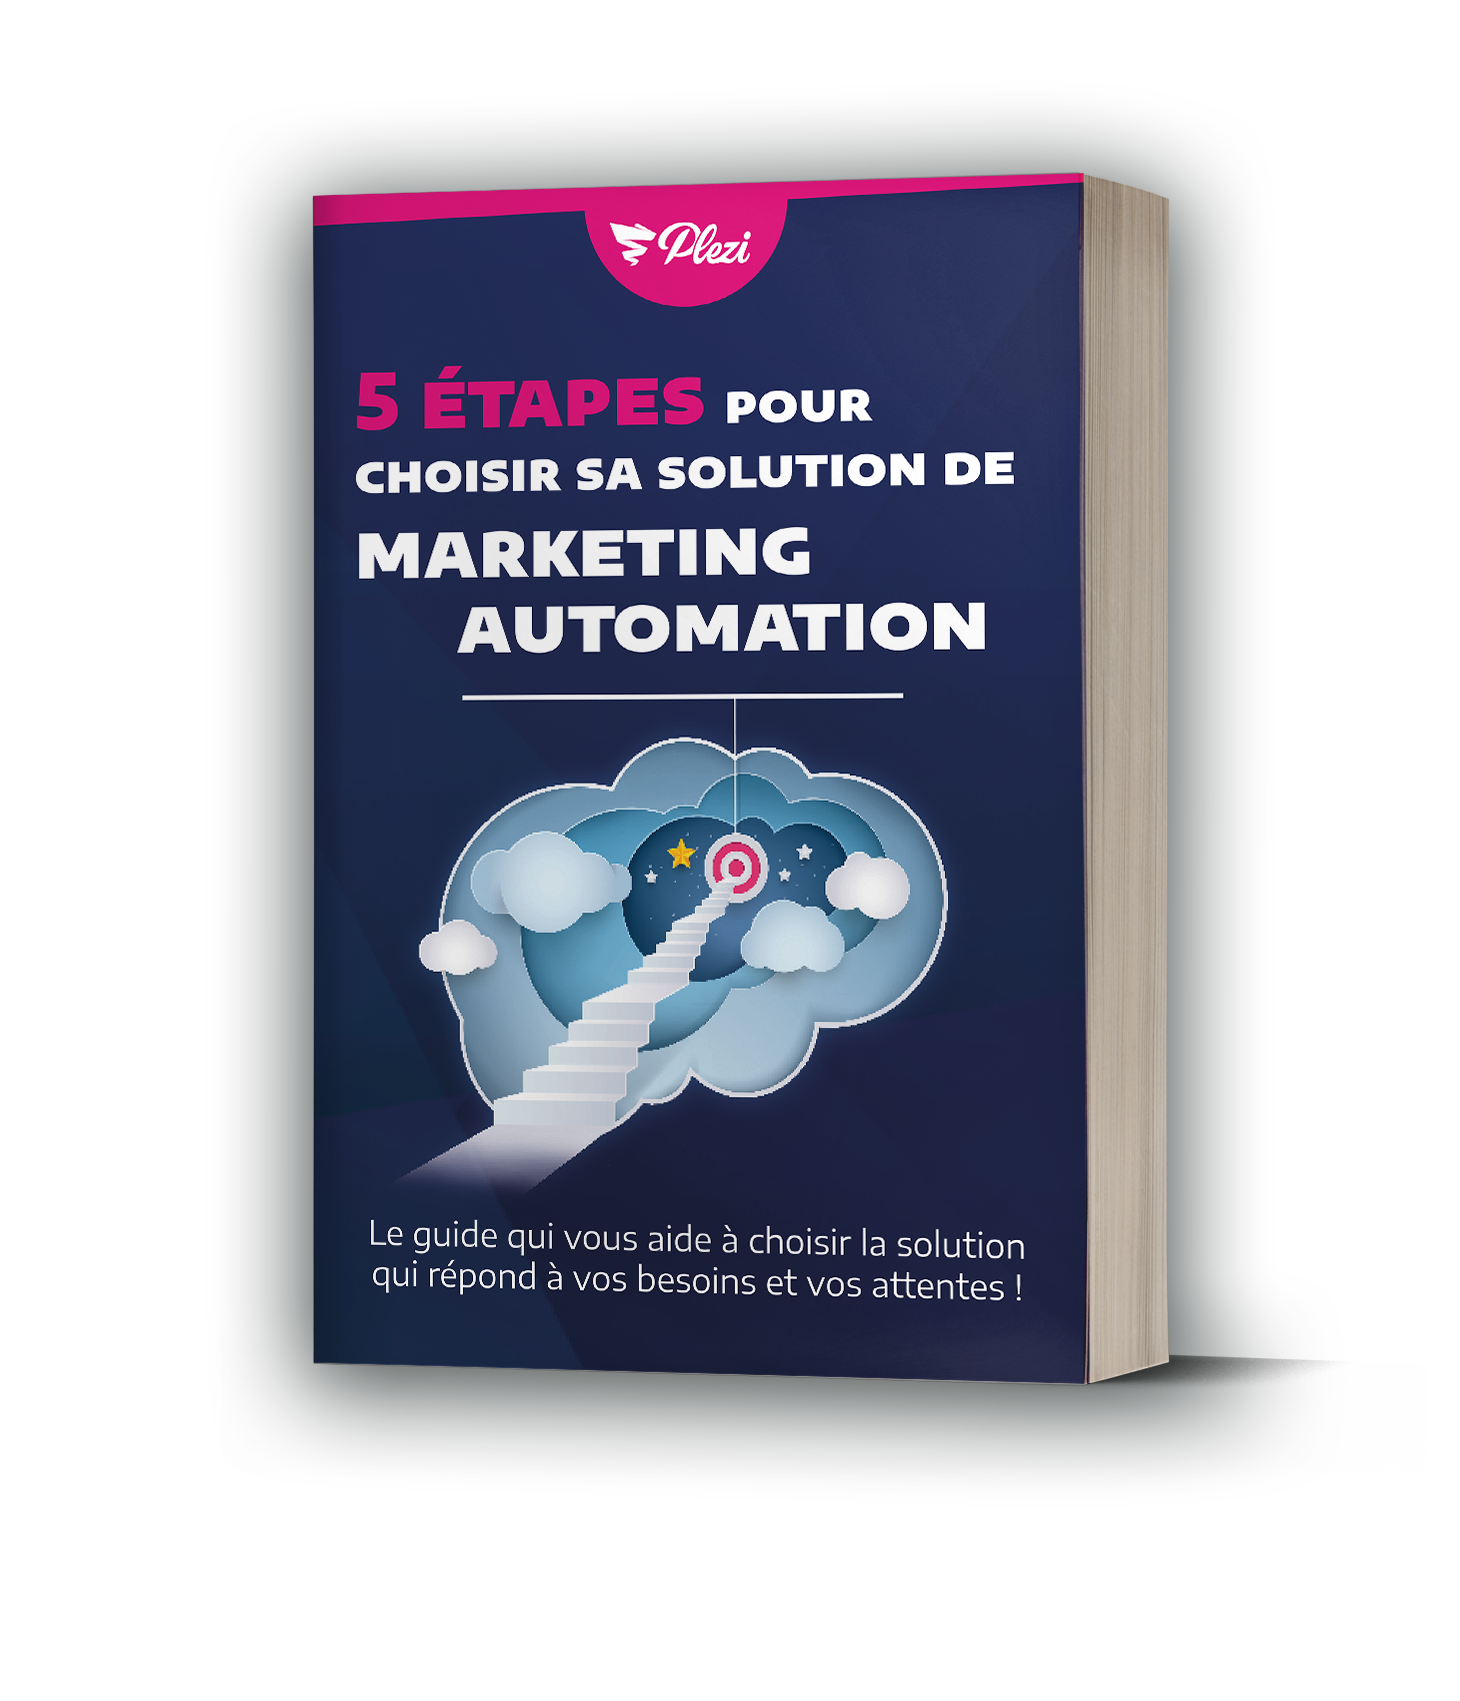 Les 5 étapes pour choisir sa solution de Marketing Automation